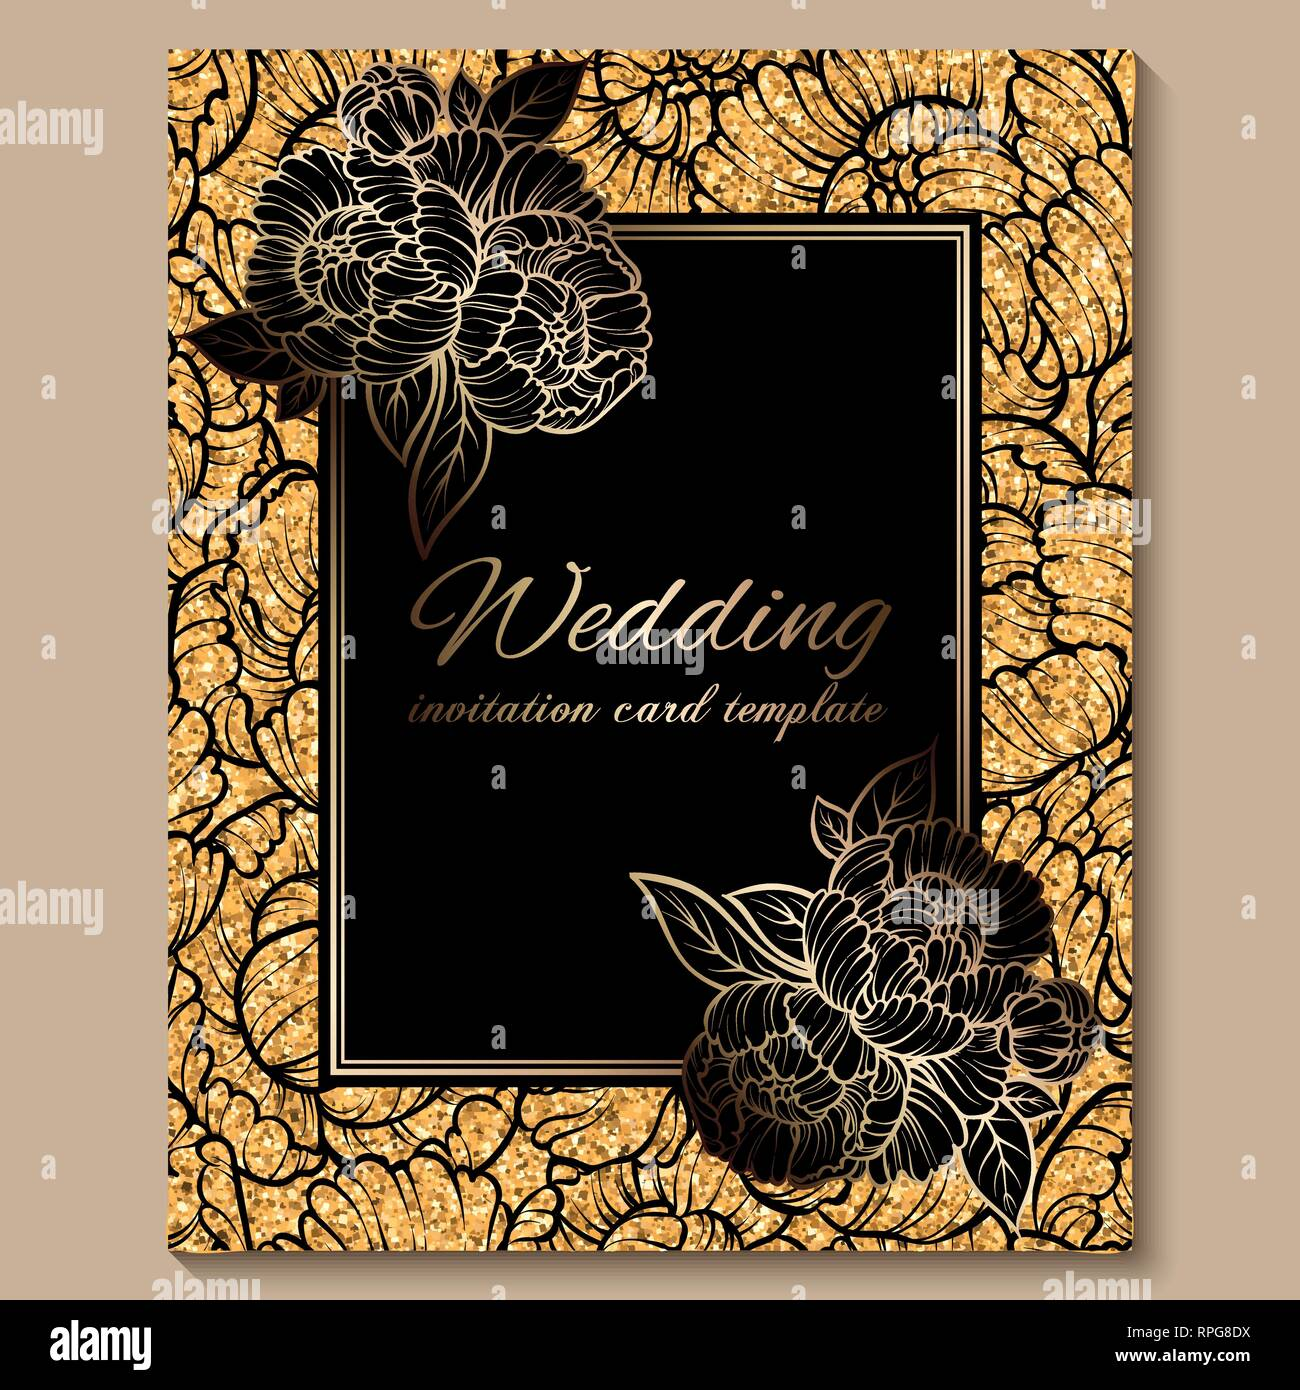 https www alamy com antique royal luxury wedding invitation card golden glitter background with frame and place for text black lacy foliage made of roses or peonies image237615110 html